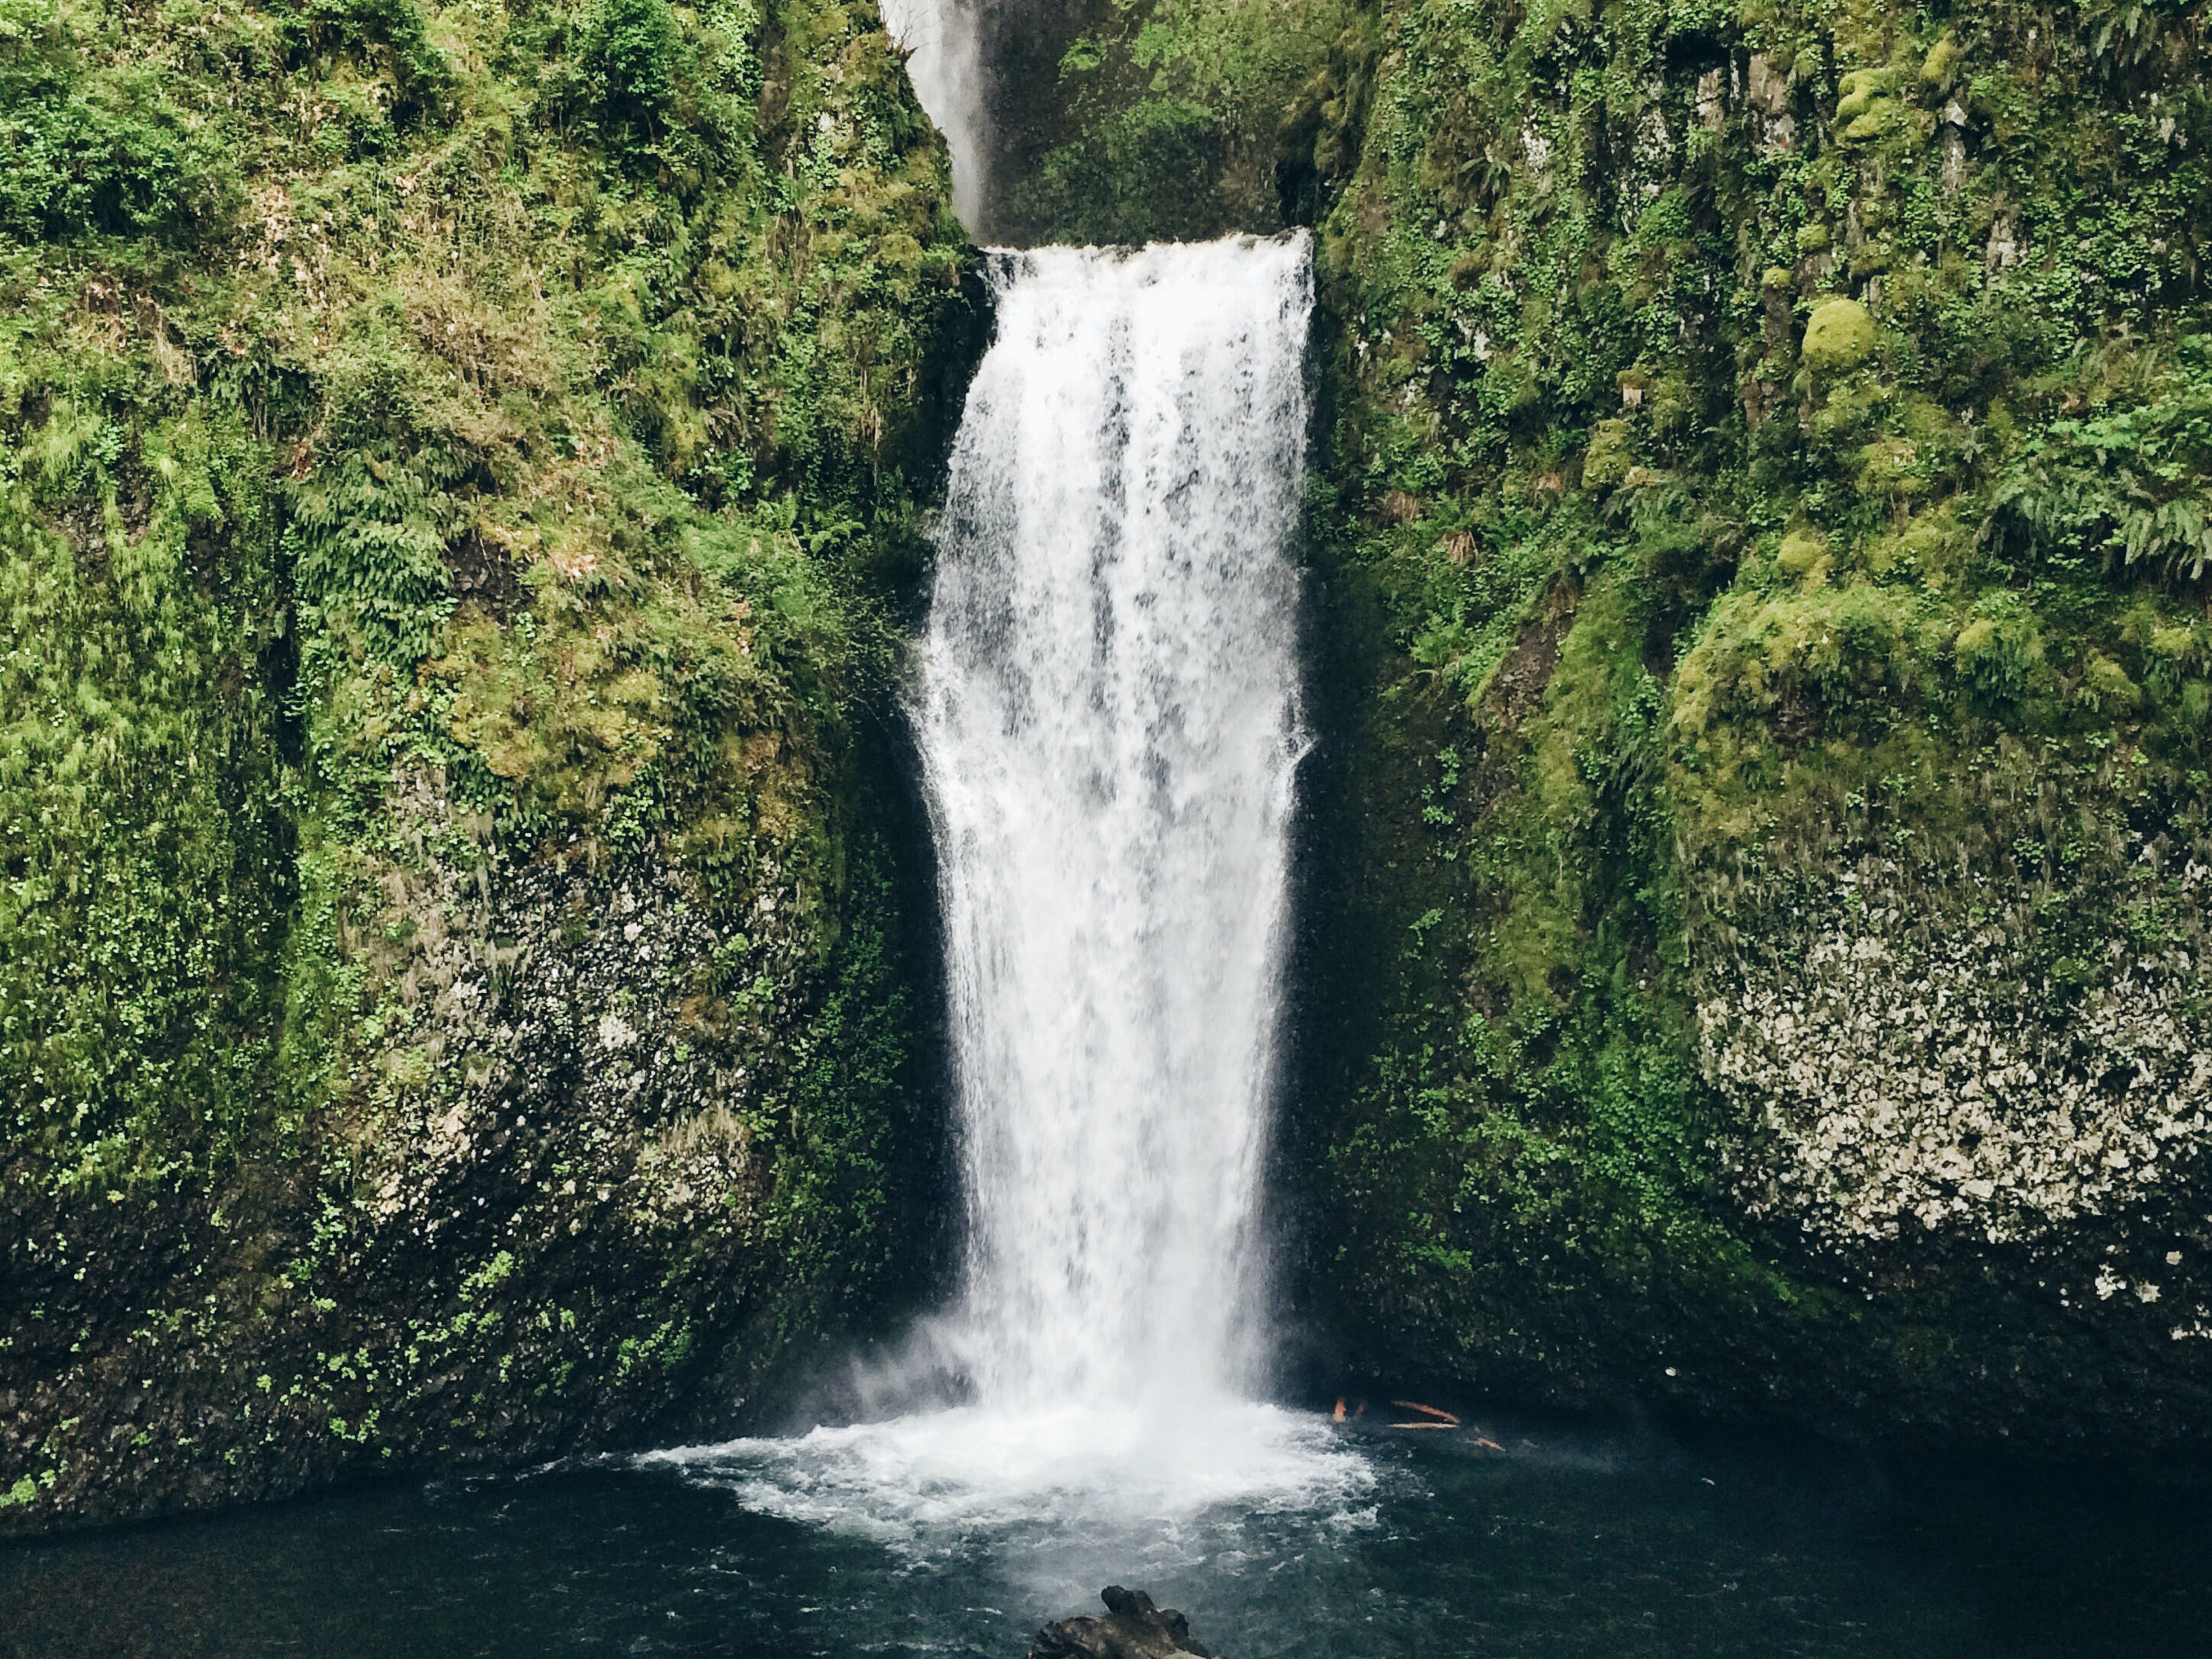 Waterfall Images · Pexels · Free Stock Photos